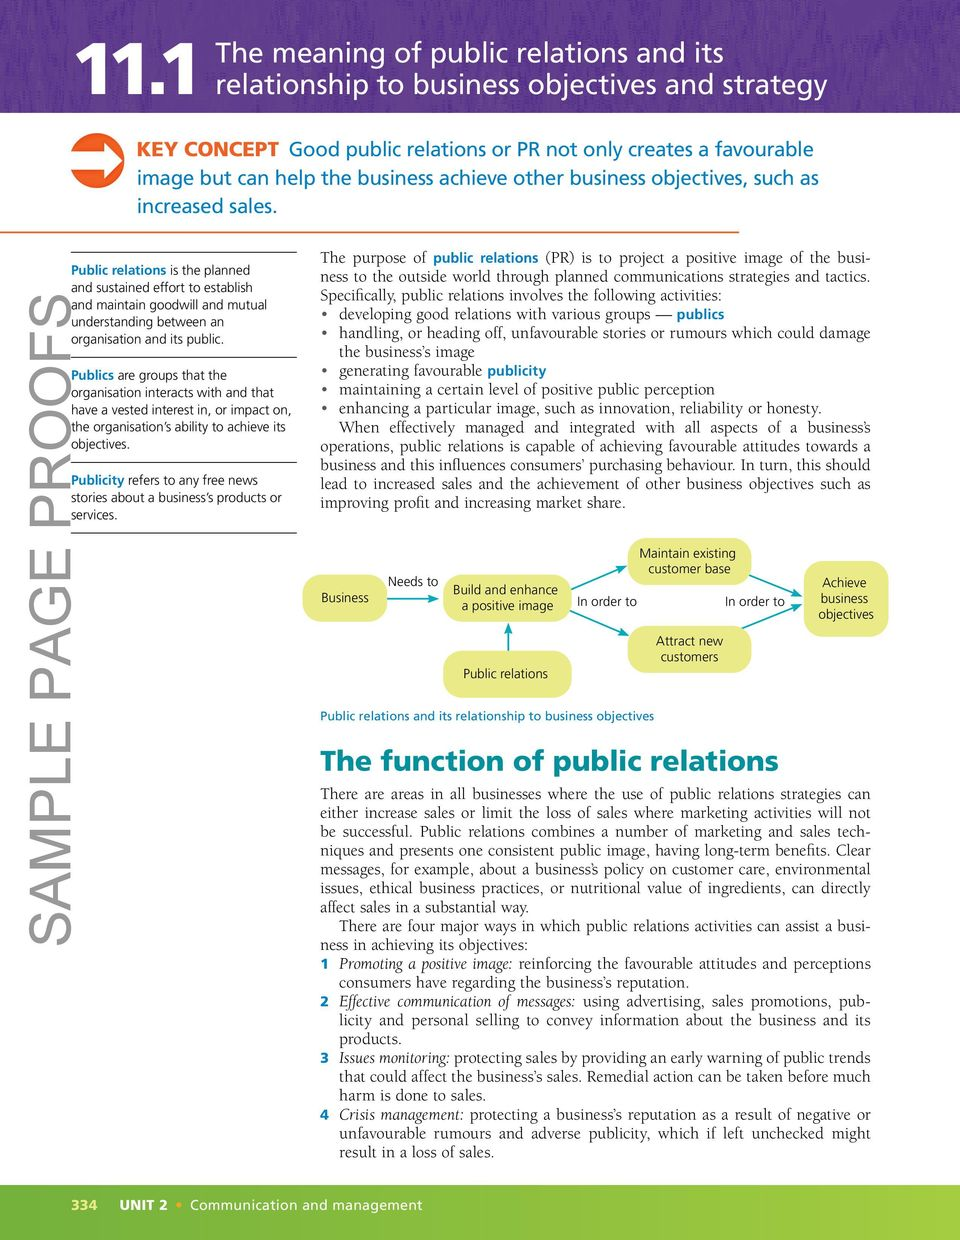 Public relations is the planned and sustained effort to establish and maintain goodwill and mutual understanding between an organisation and its public.